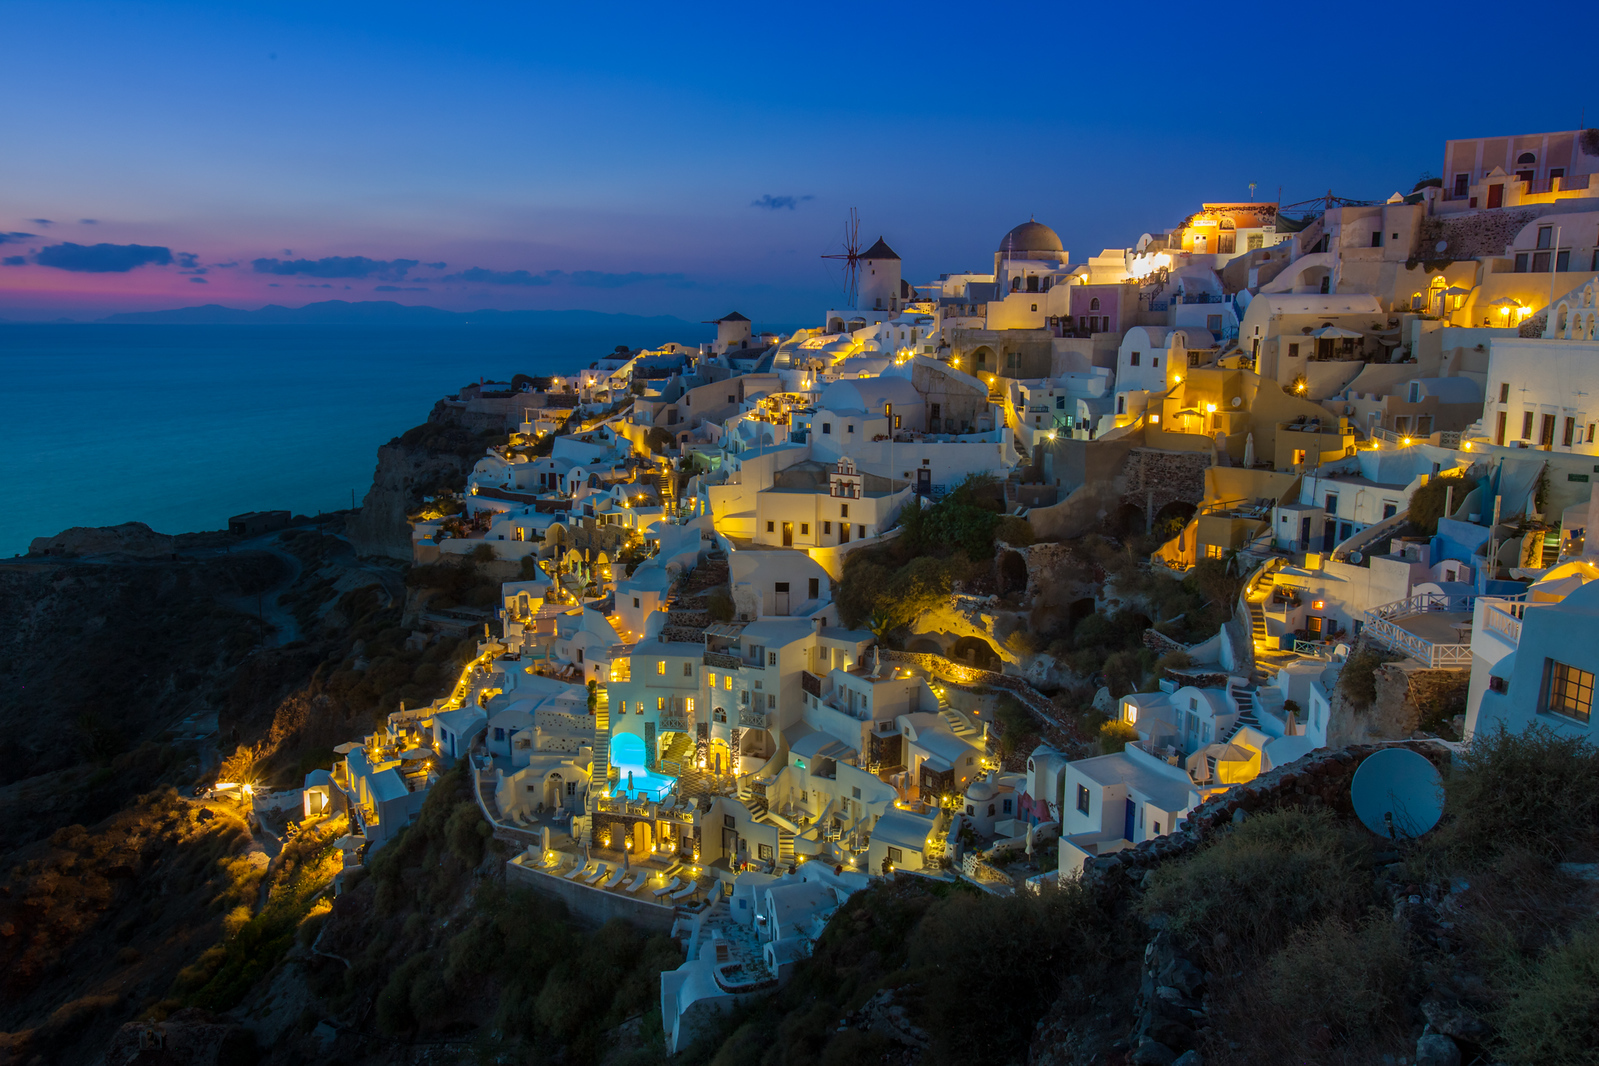 The beautiful Oia at night in Santorini